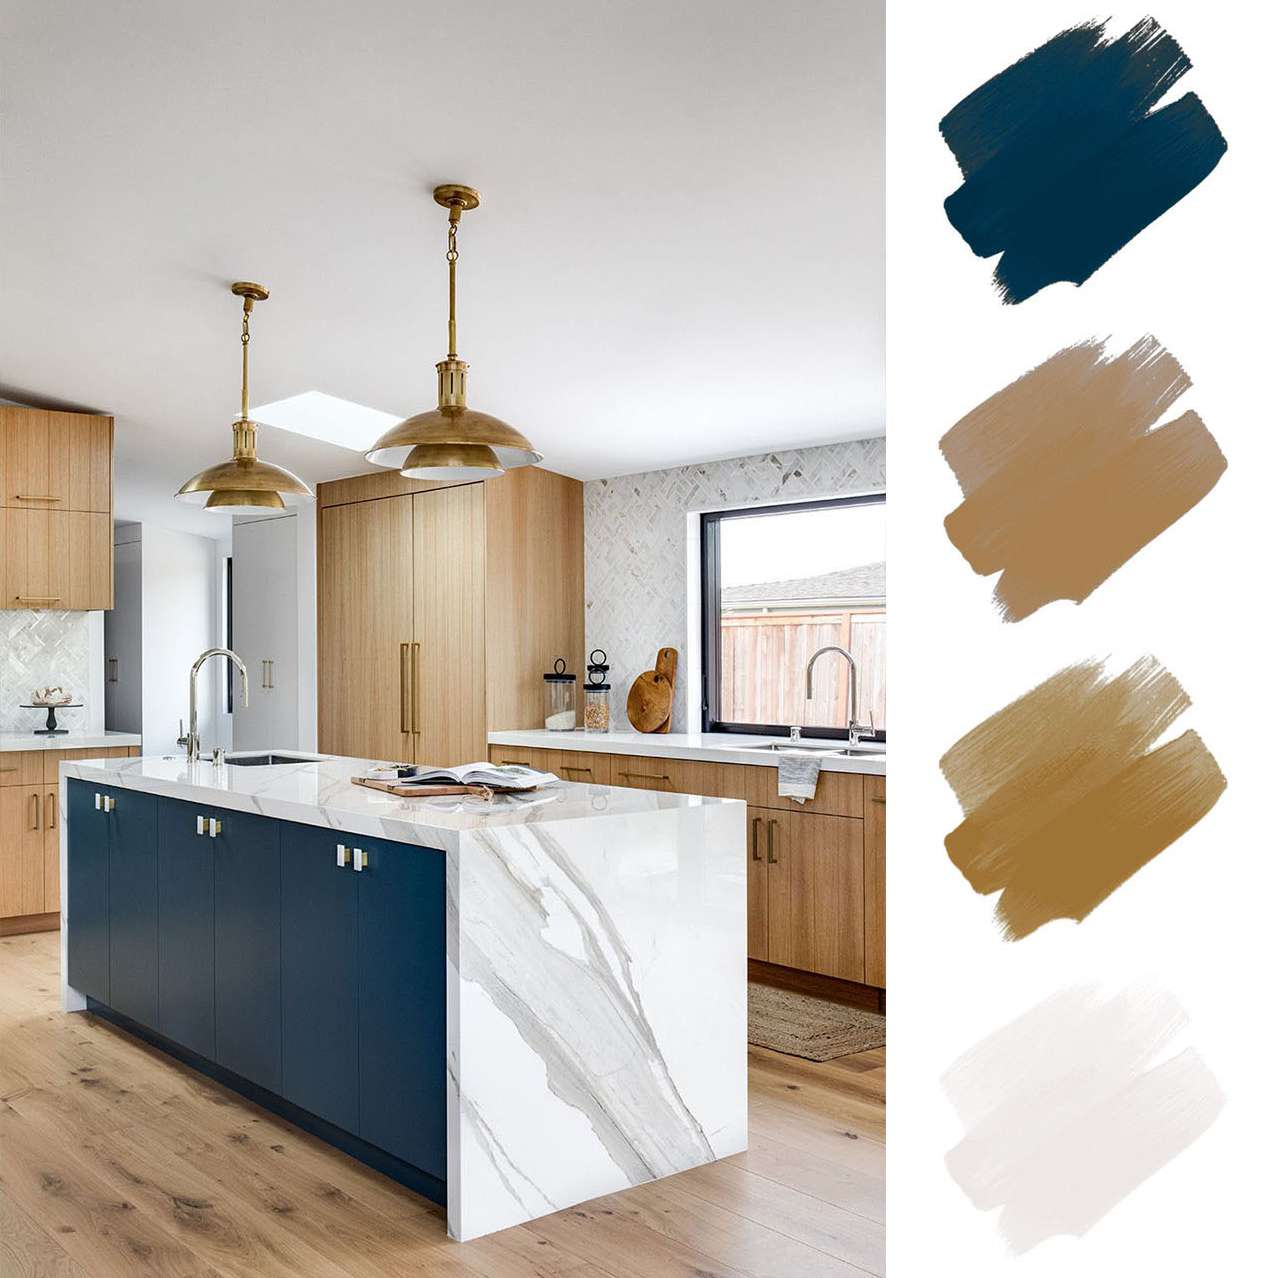 kitchen color schemes - wood and white